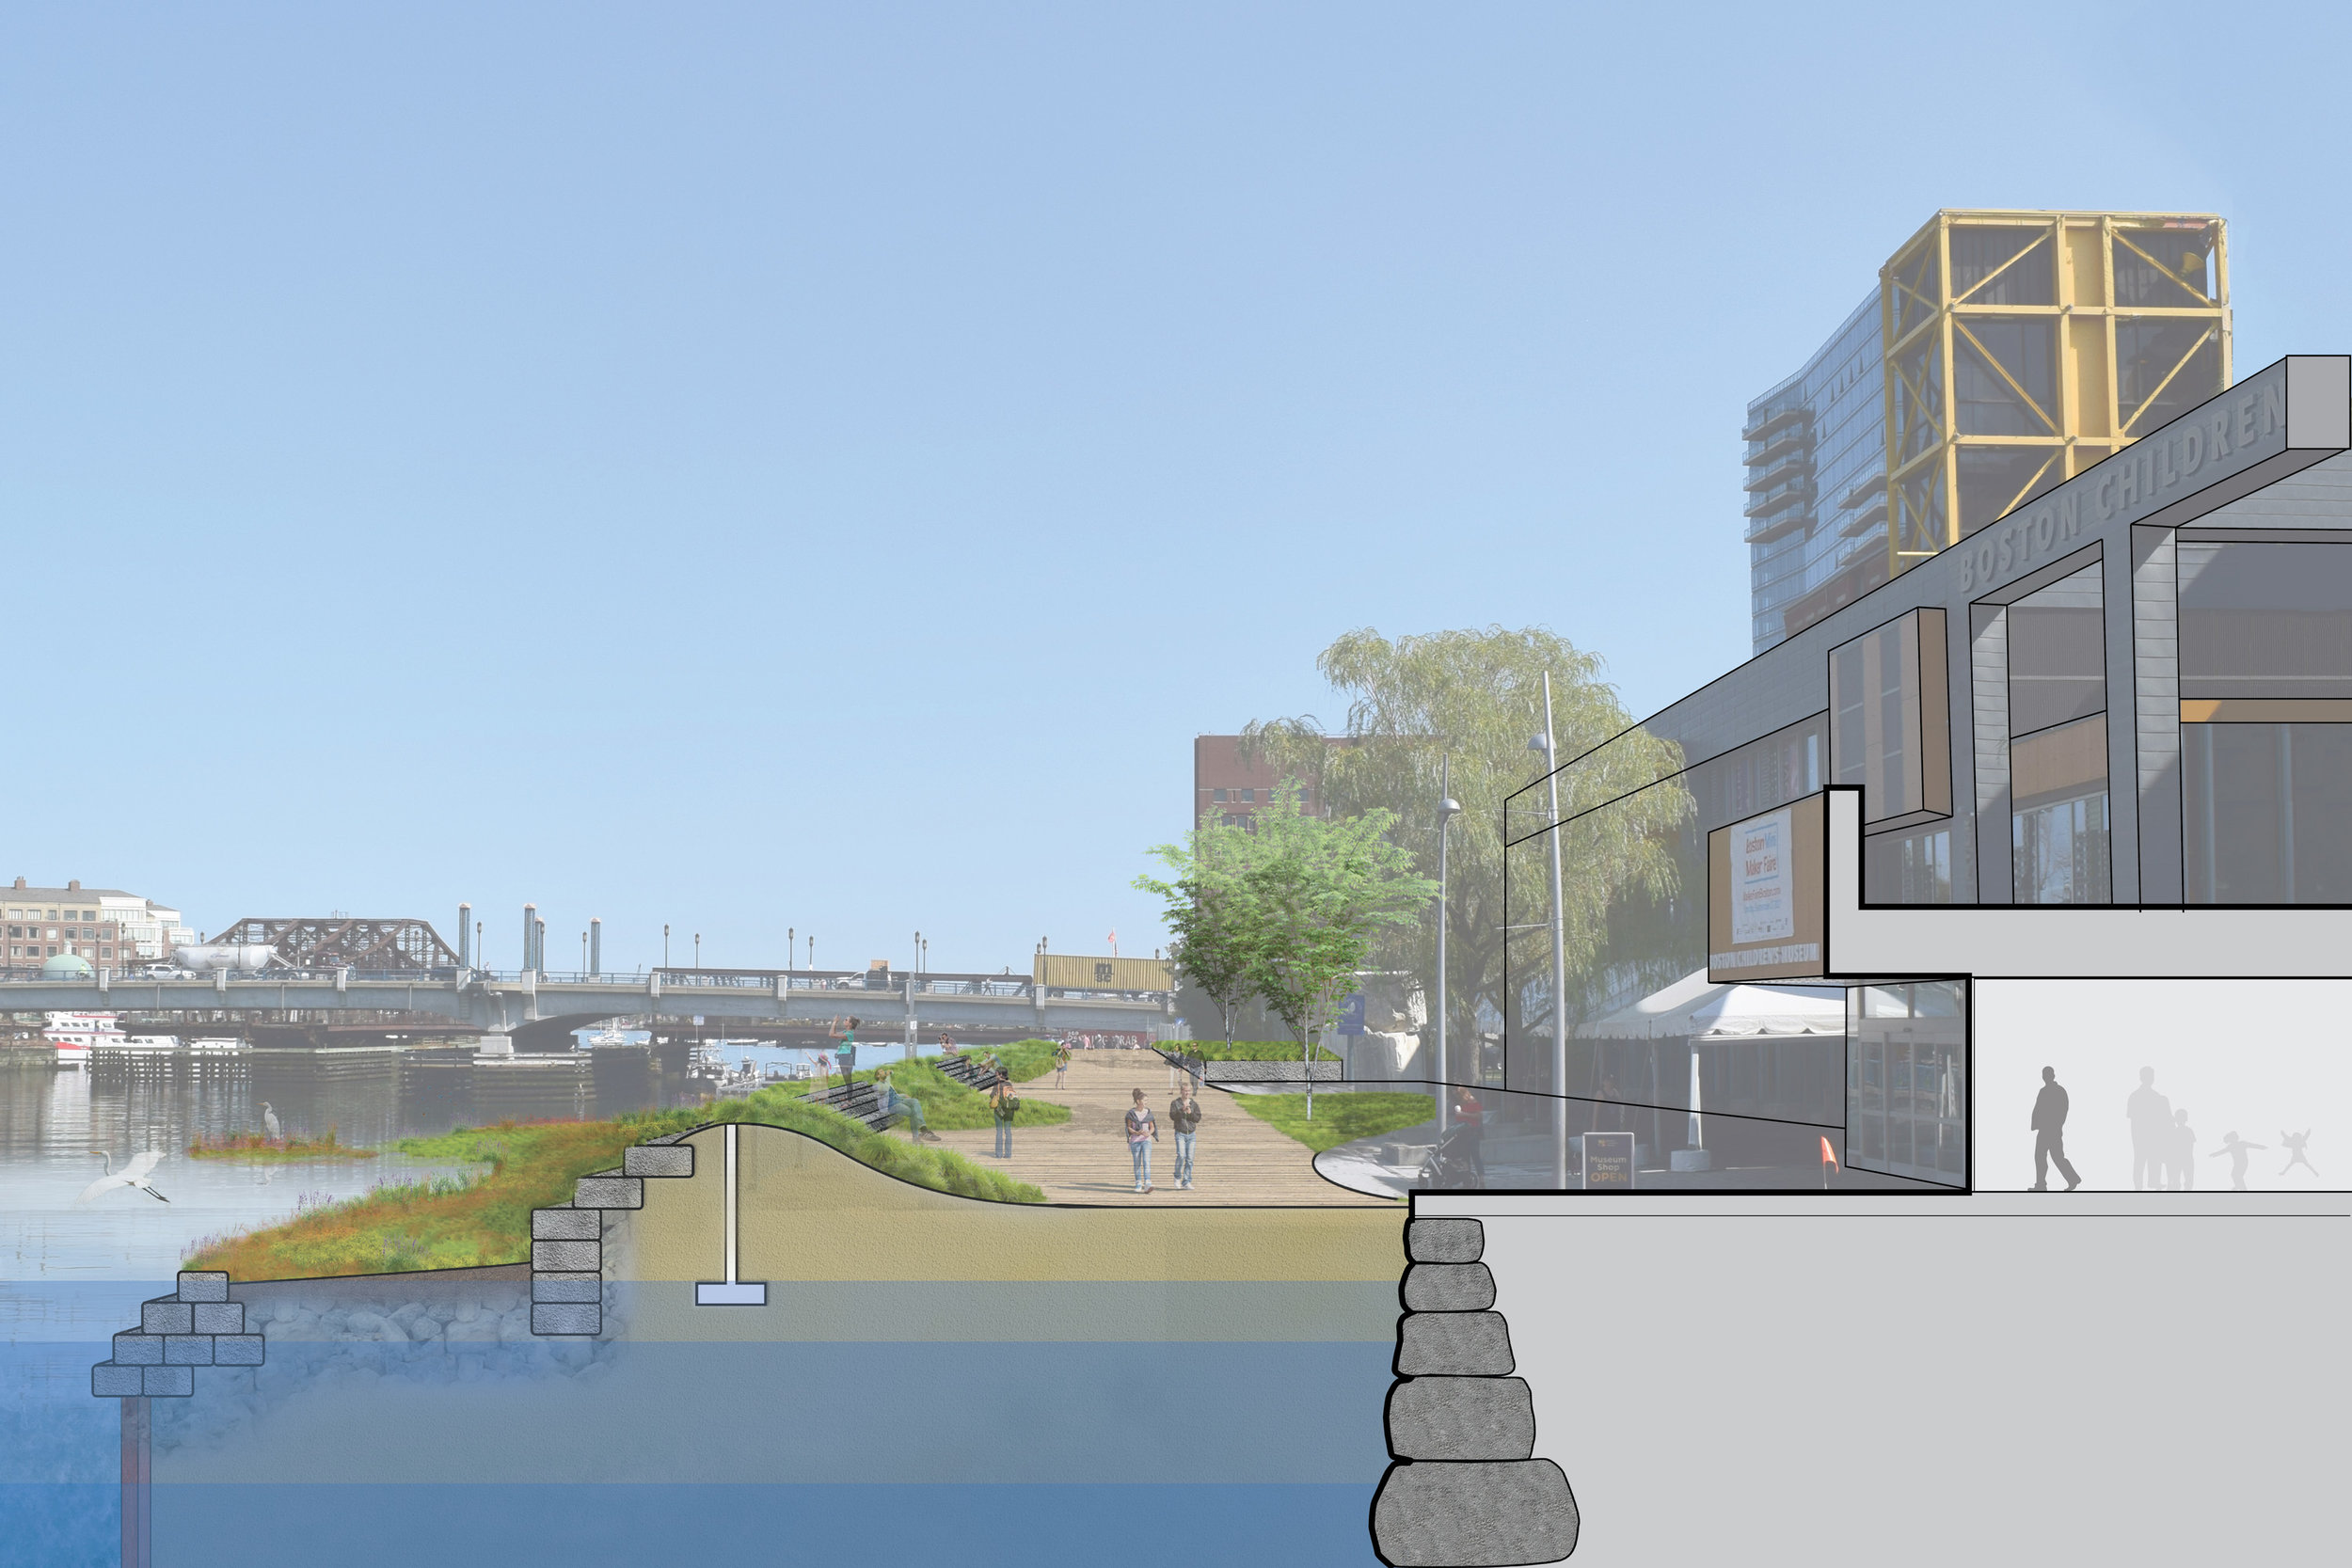 Climate Ready South Boston Fort Point Section View (Halvorson Design)